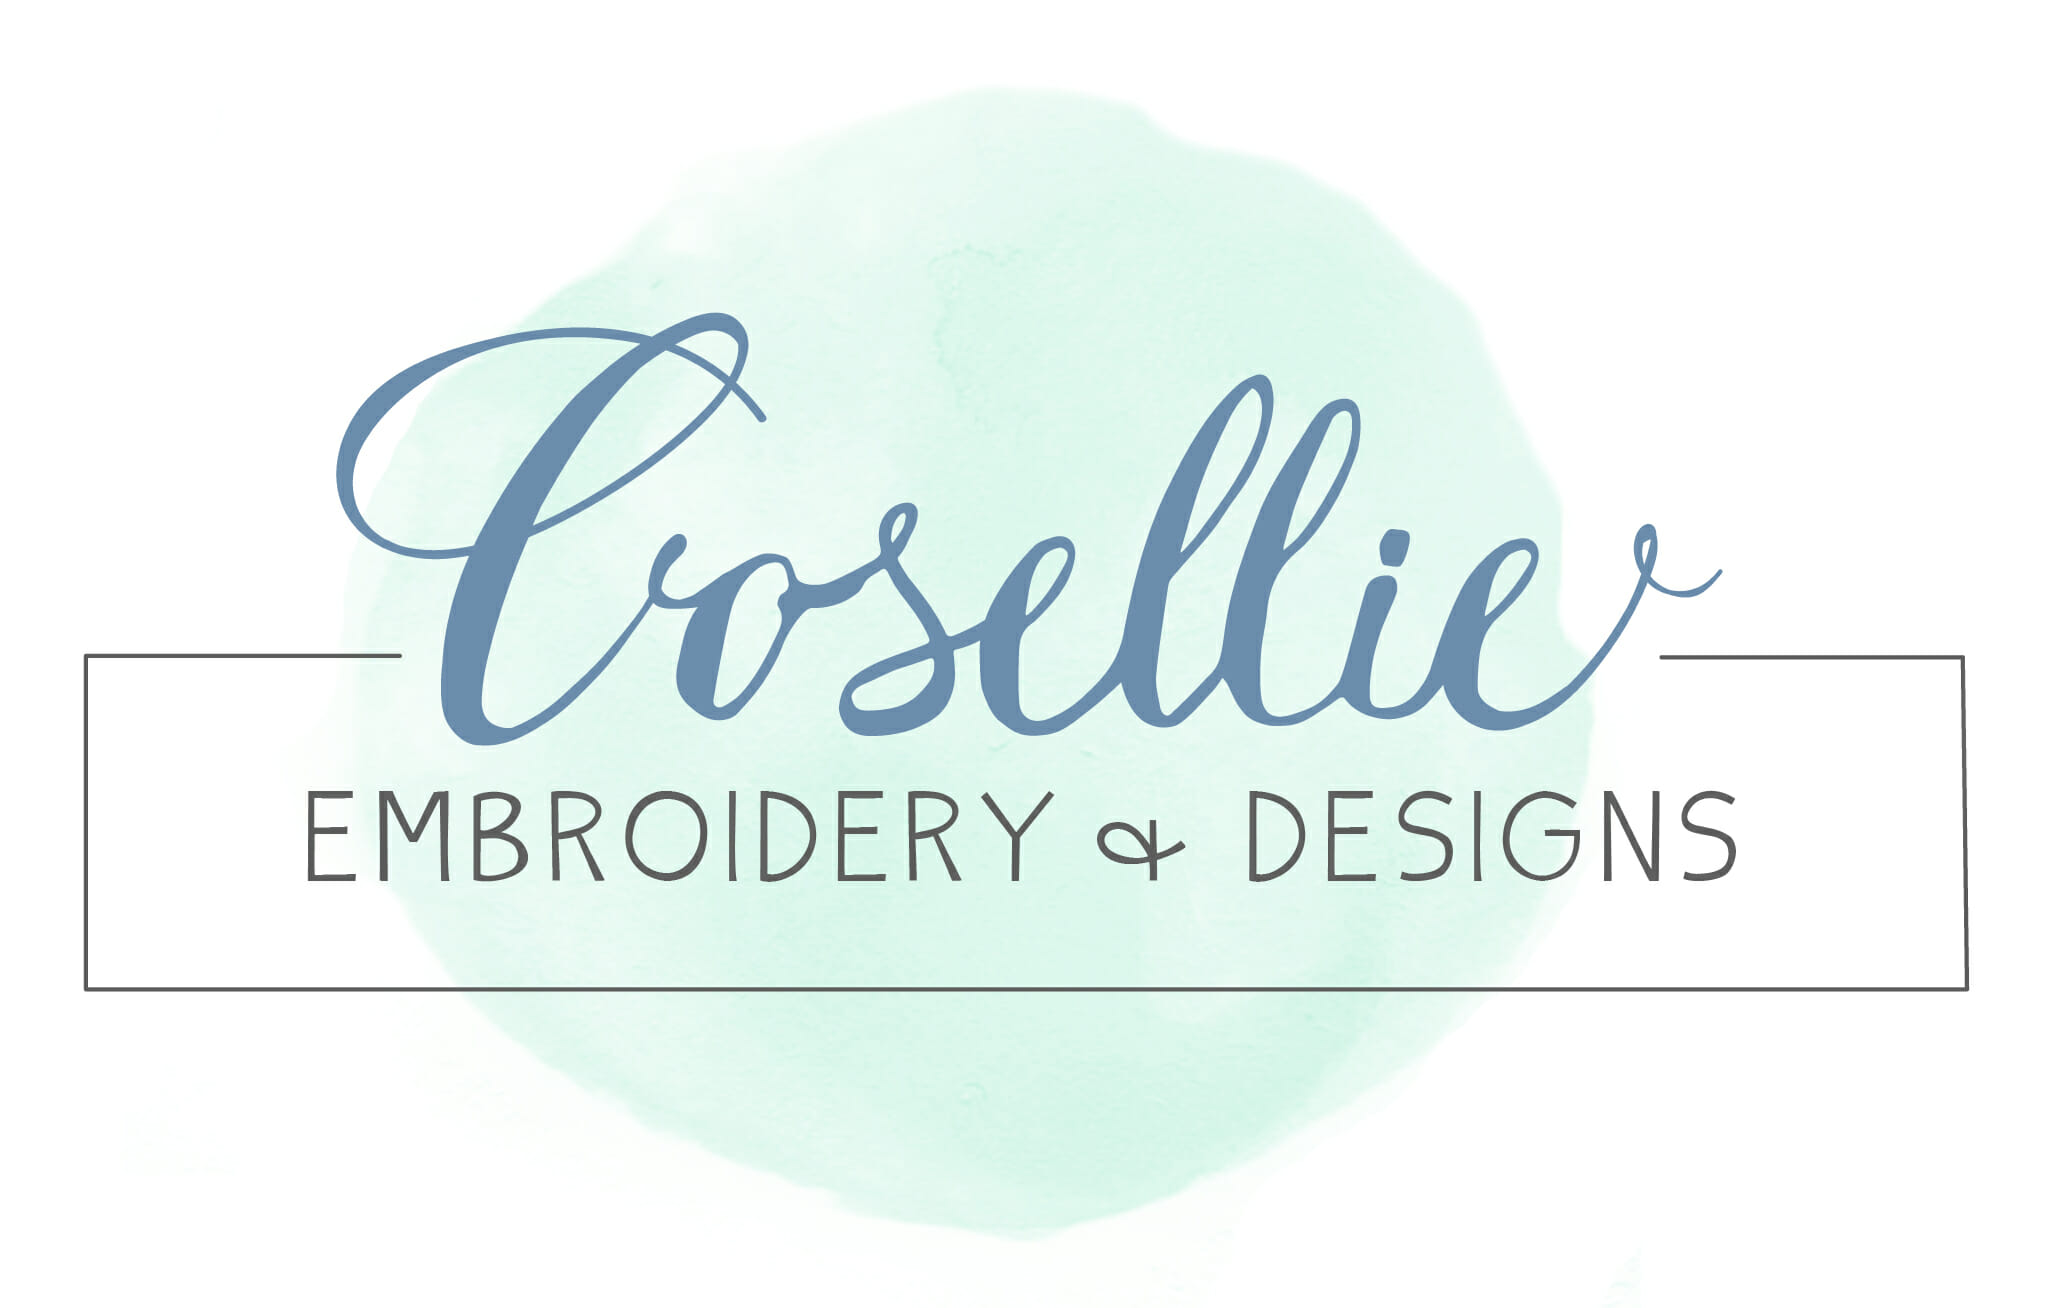 embroidery files cosellie